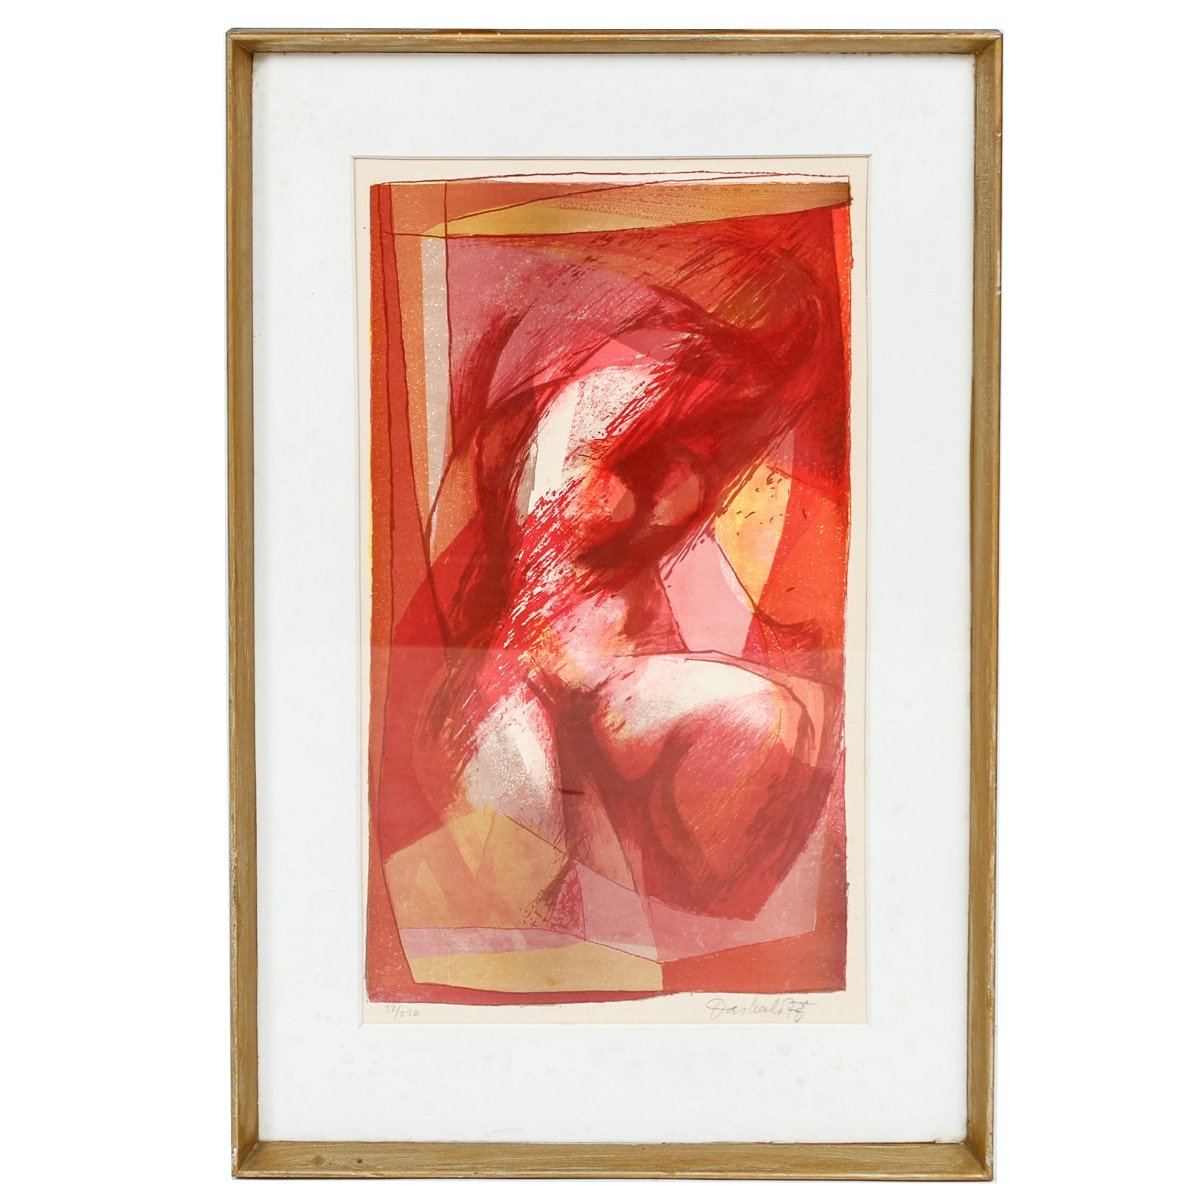 Limited Edition Lithograph of Abstract Composition